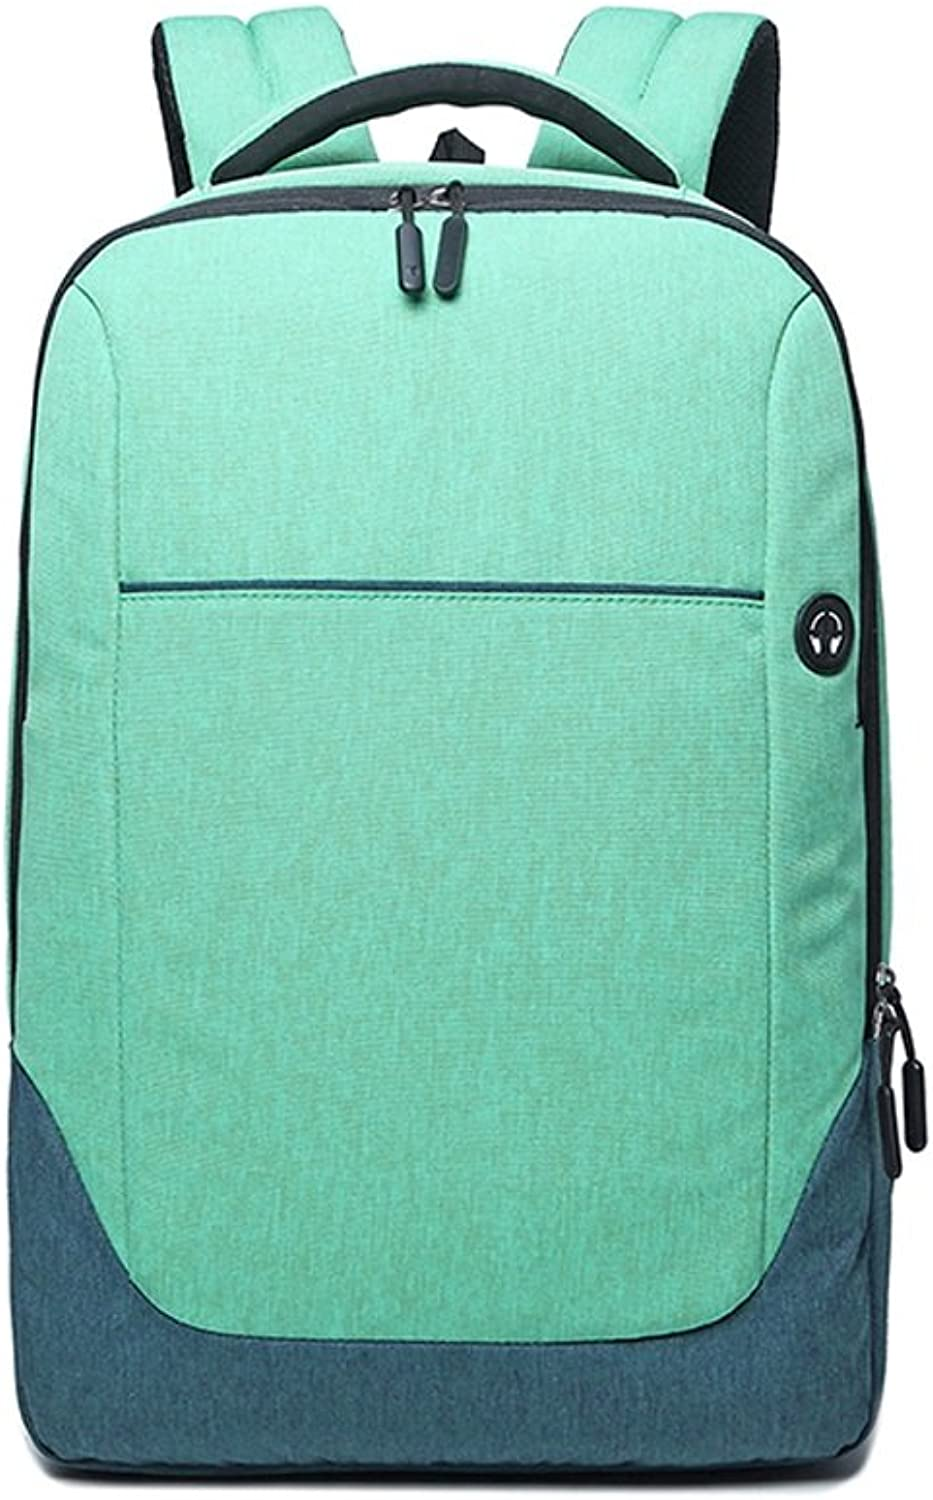 CJH Leisure Travel College Students Backpack Female Computer Bag Fashion Trend Campus Bag Male Green